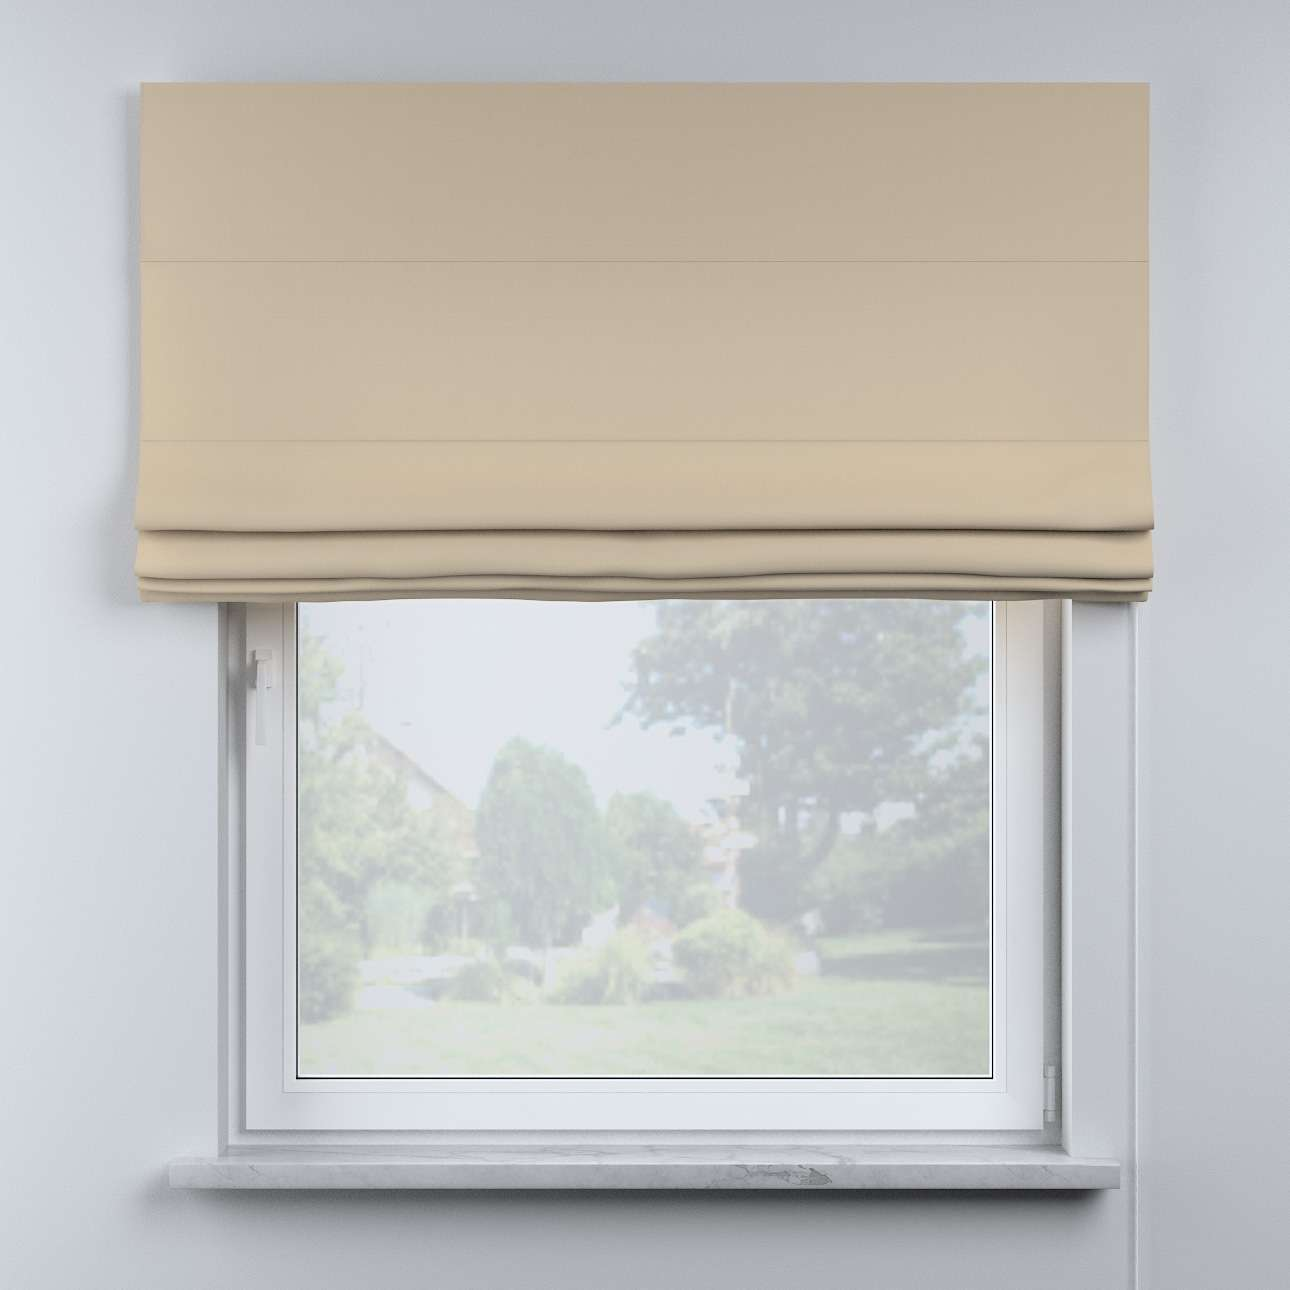 Billie roman blind in collection Cotton Story, fabric: 702-01